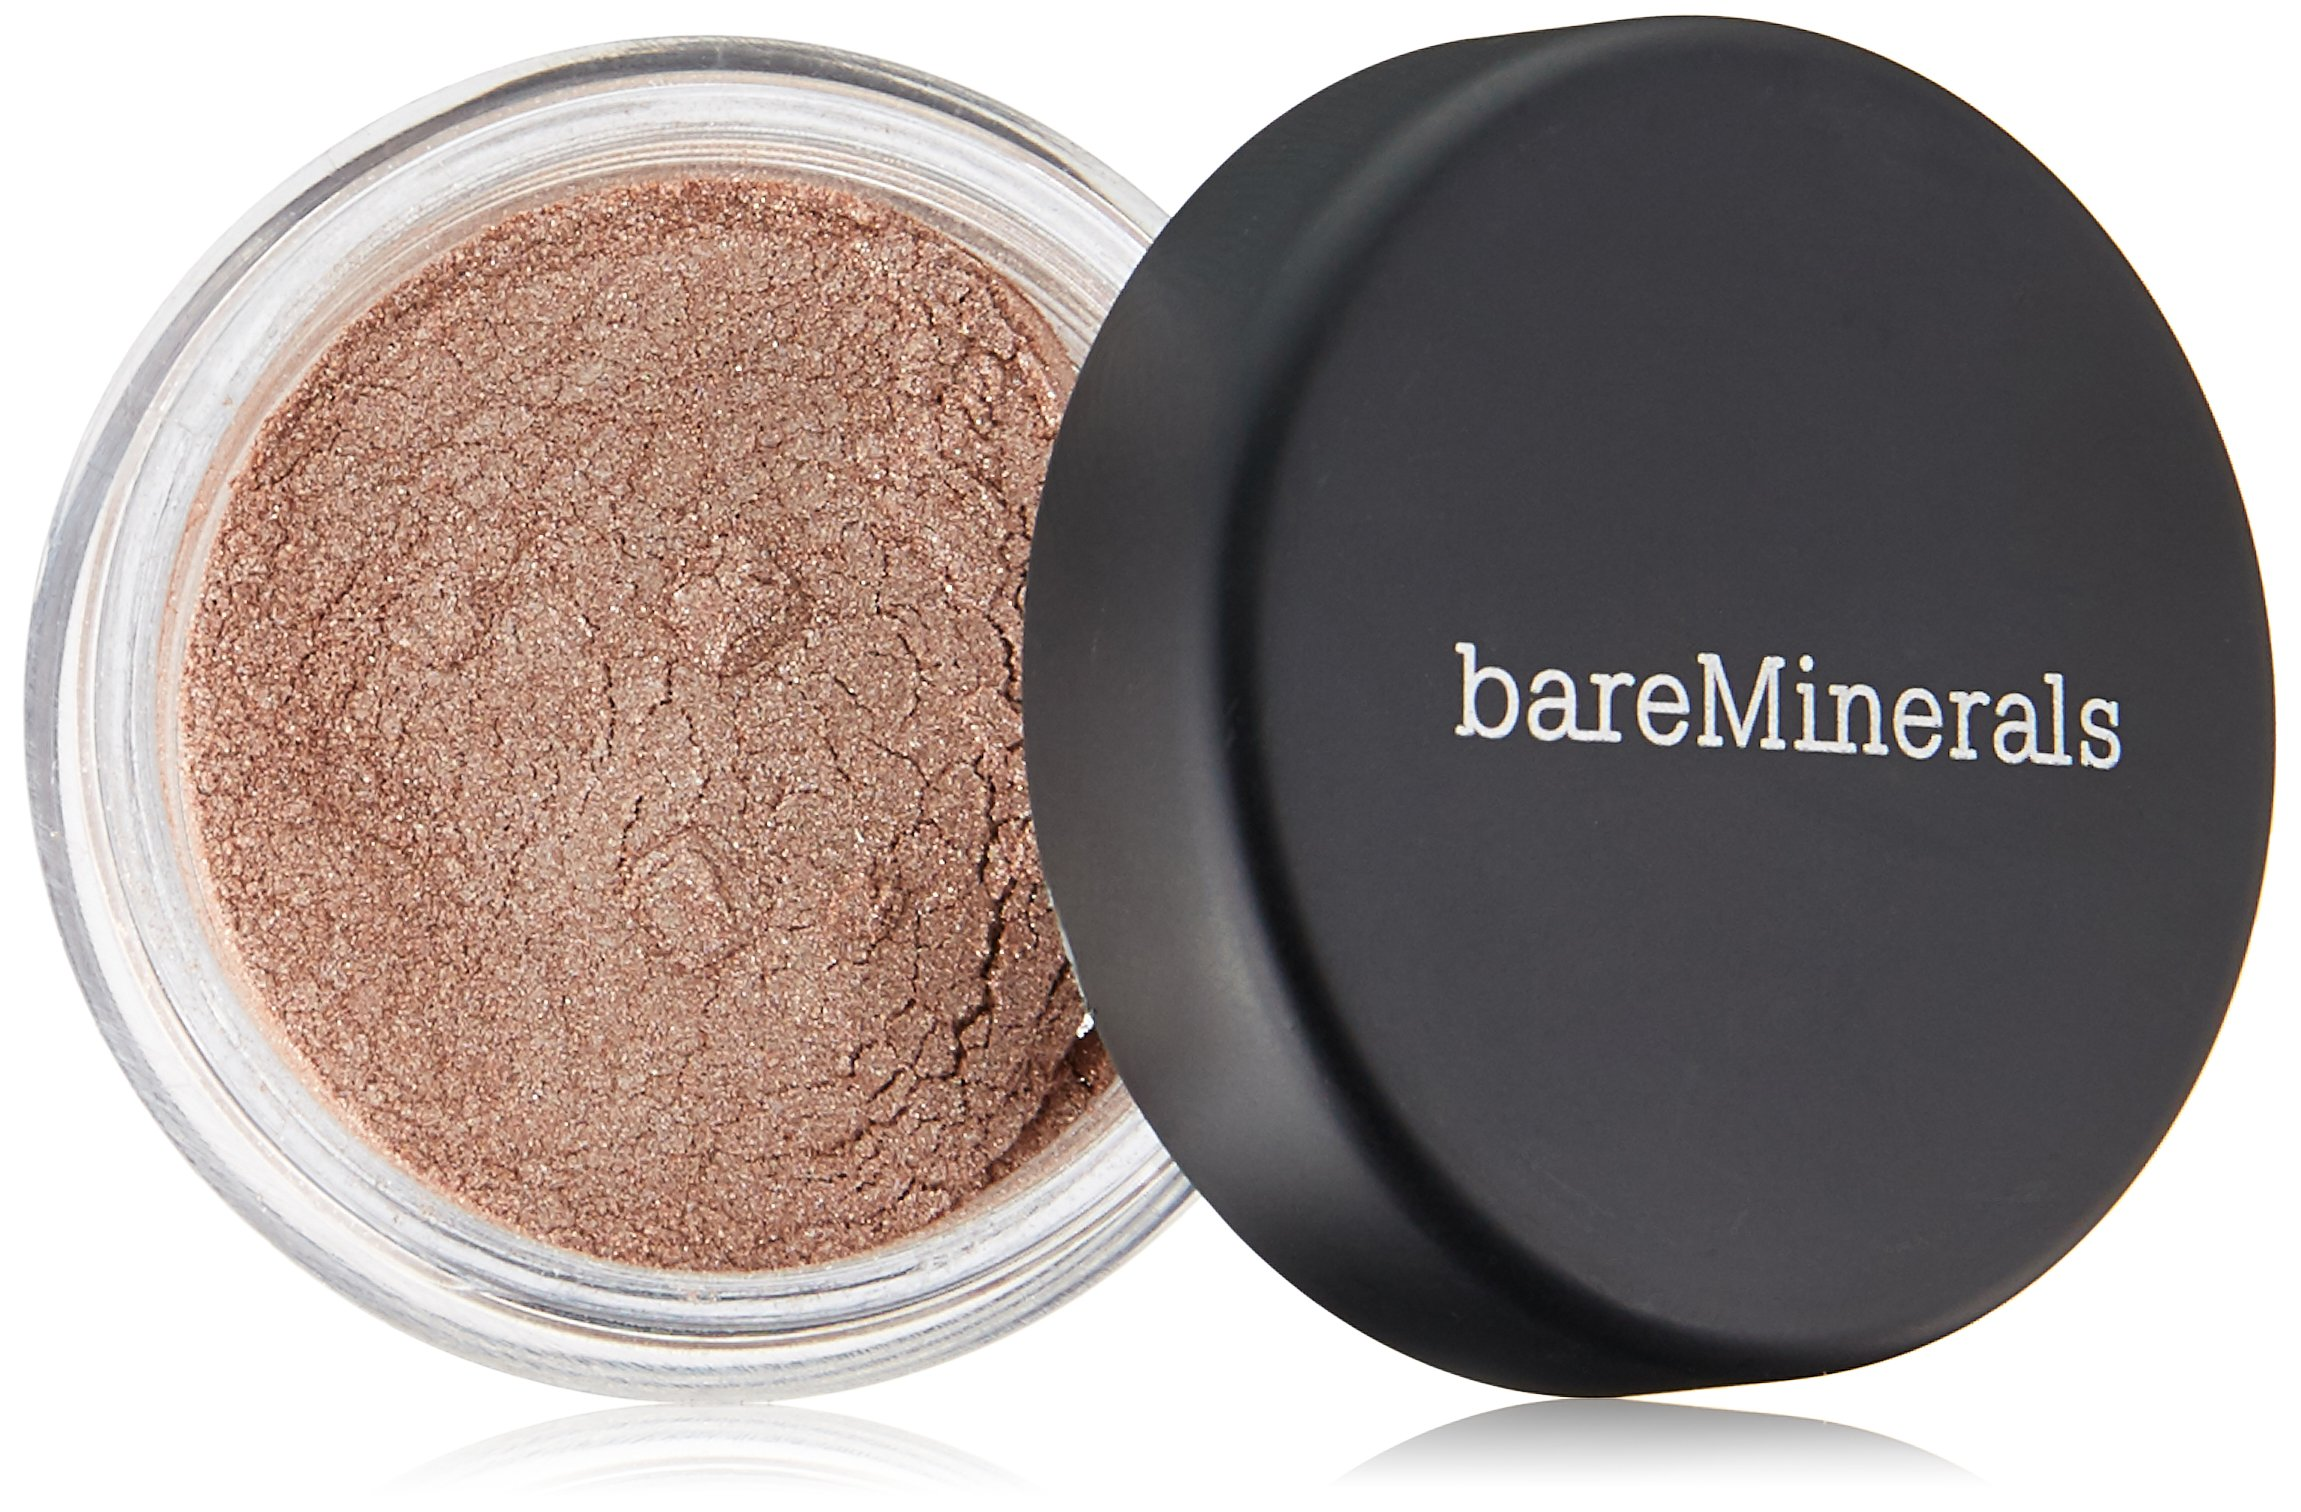 Bareminerals Eye Shadow, Nude Beach, 0.02 Ounce